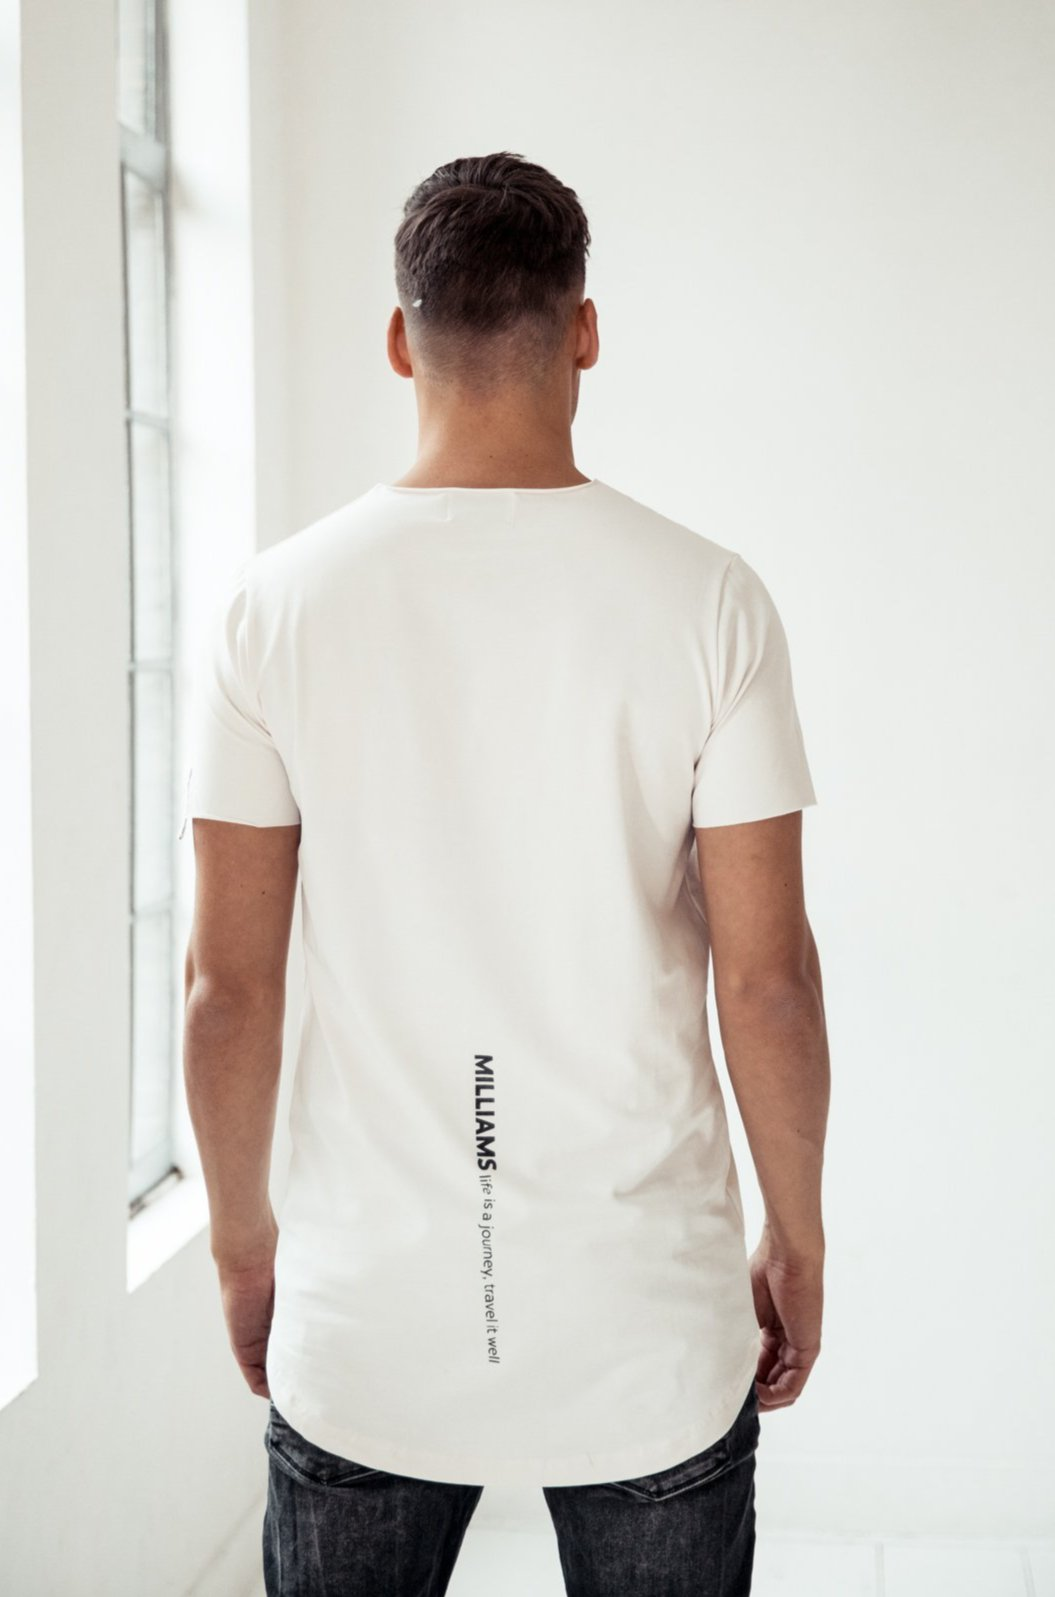 MILLIAMS T-shirt white, (slim-fit)